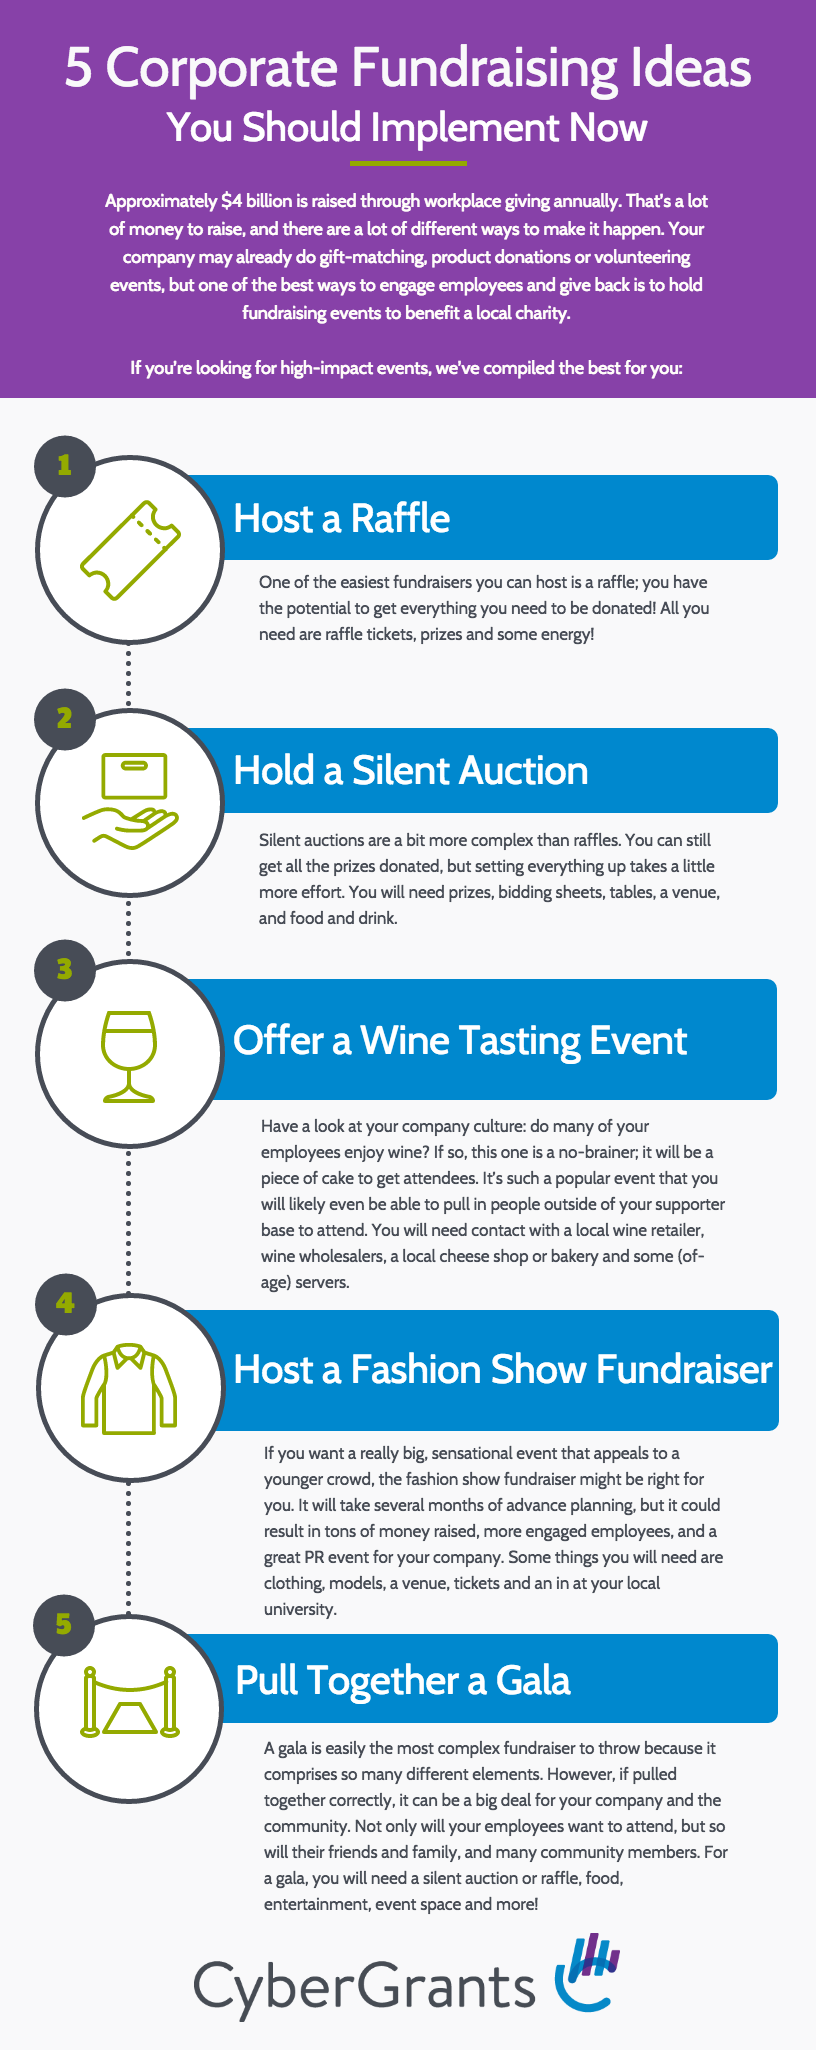 5 Corporate Fundraising Ideas